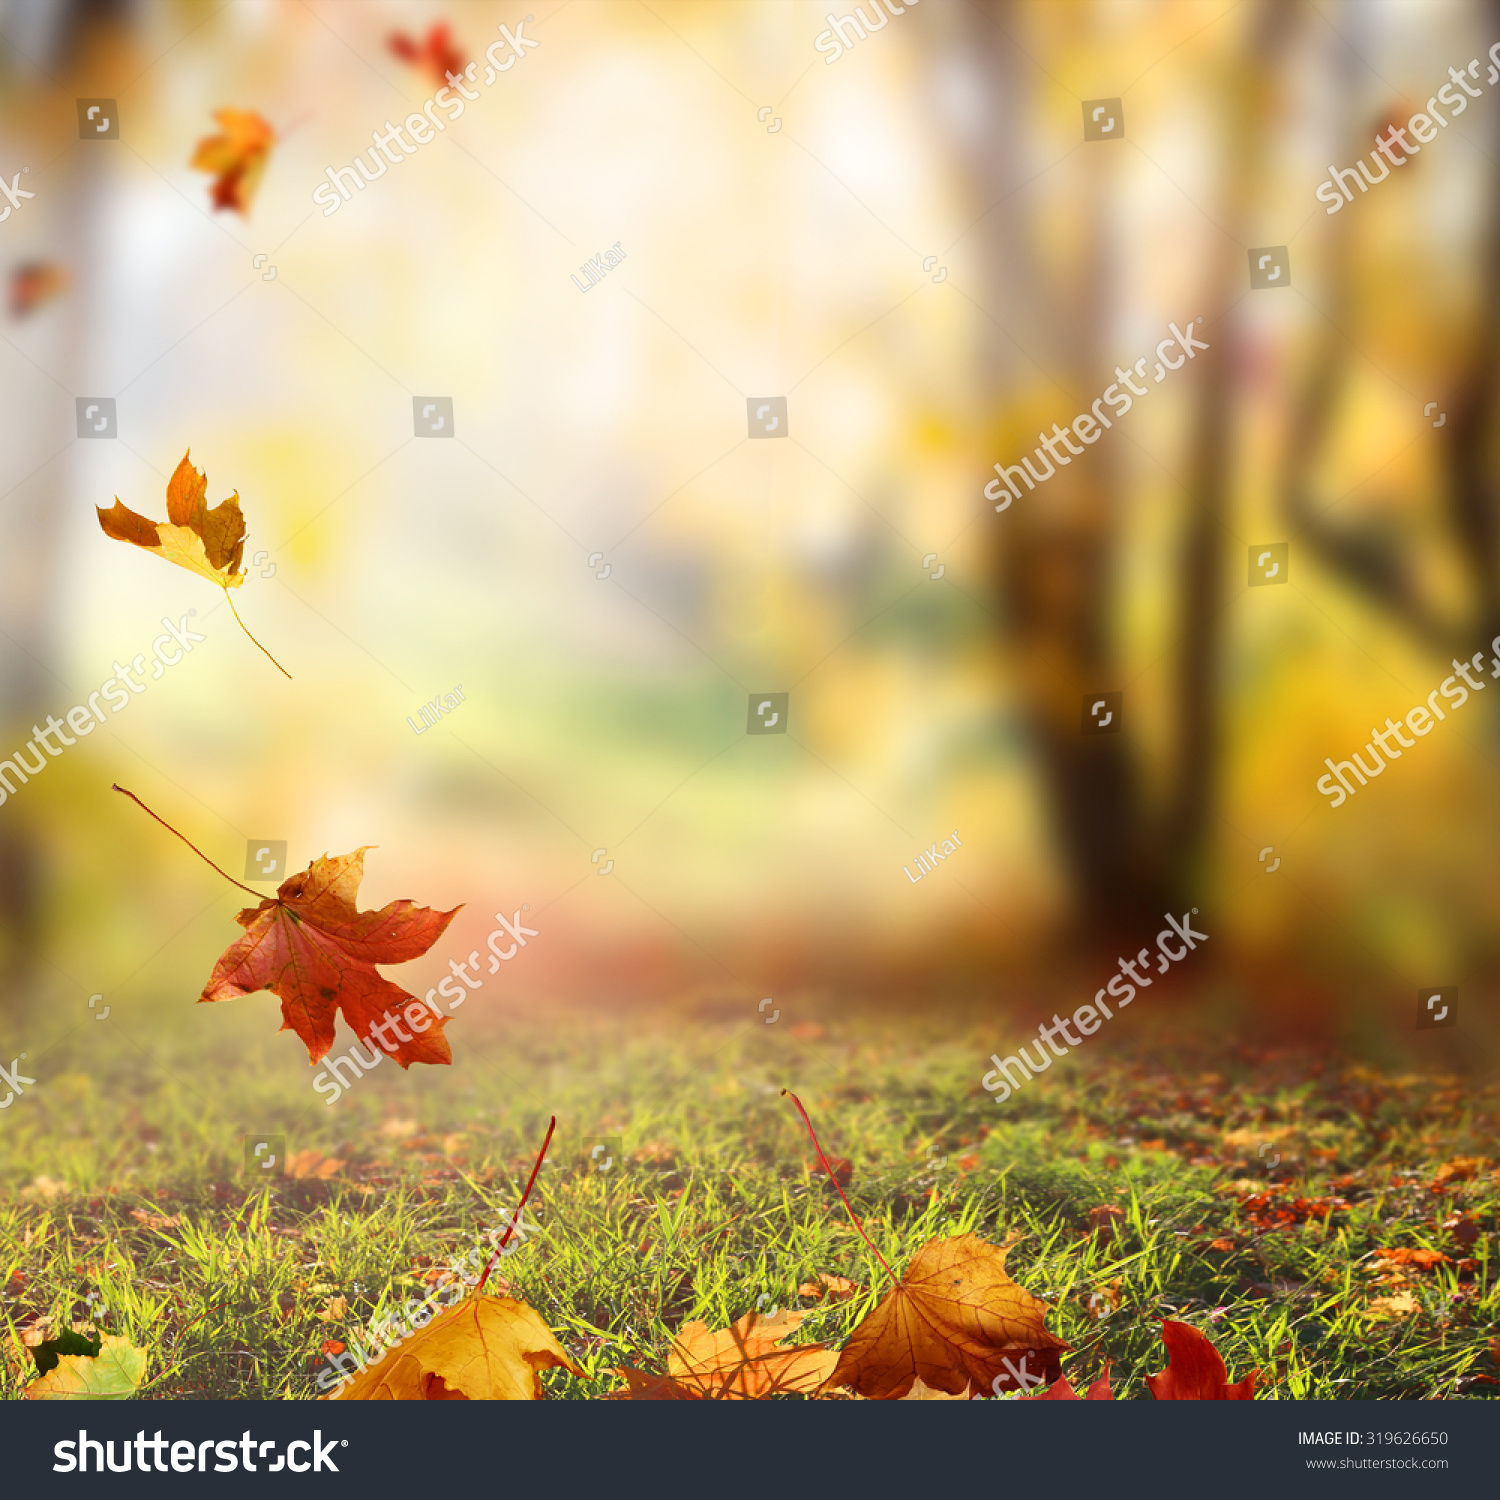 Falling Autumn Leaves Background Stock Photo 319626650 - Shutterstock